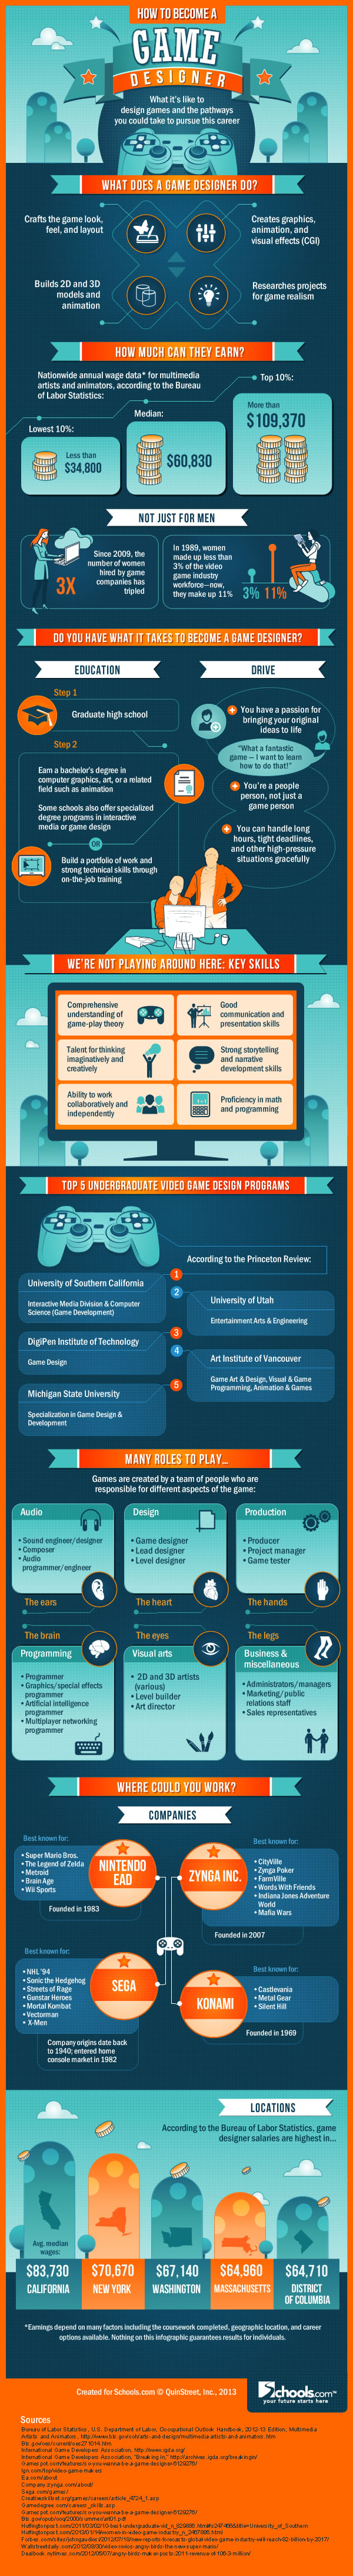 What You Need To Know About A Game Designer